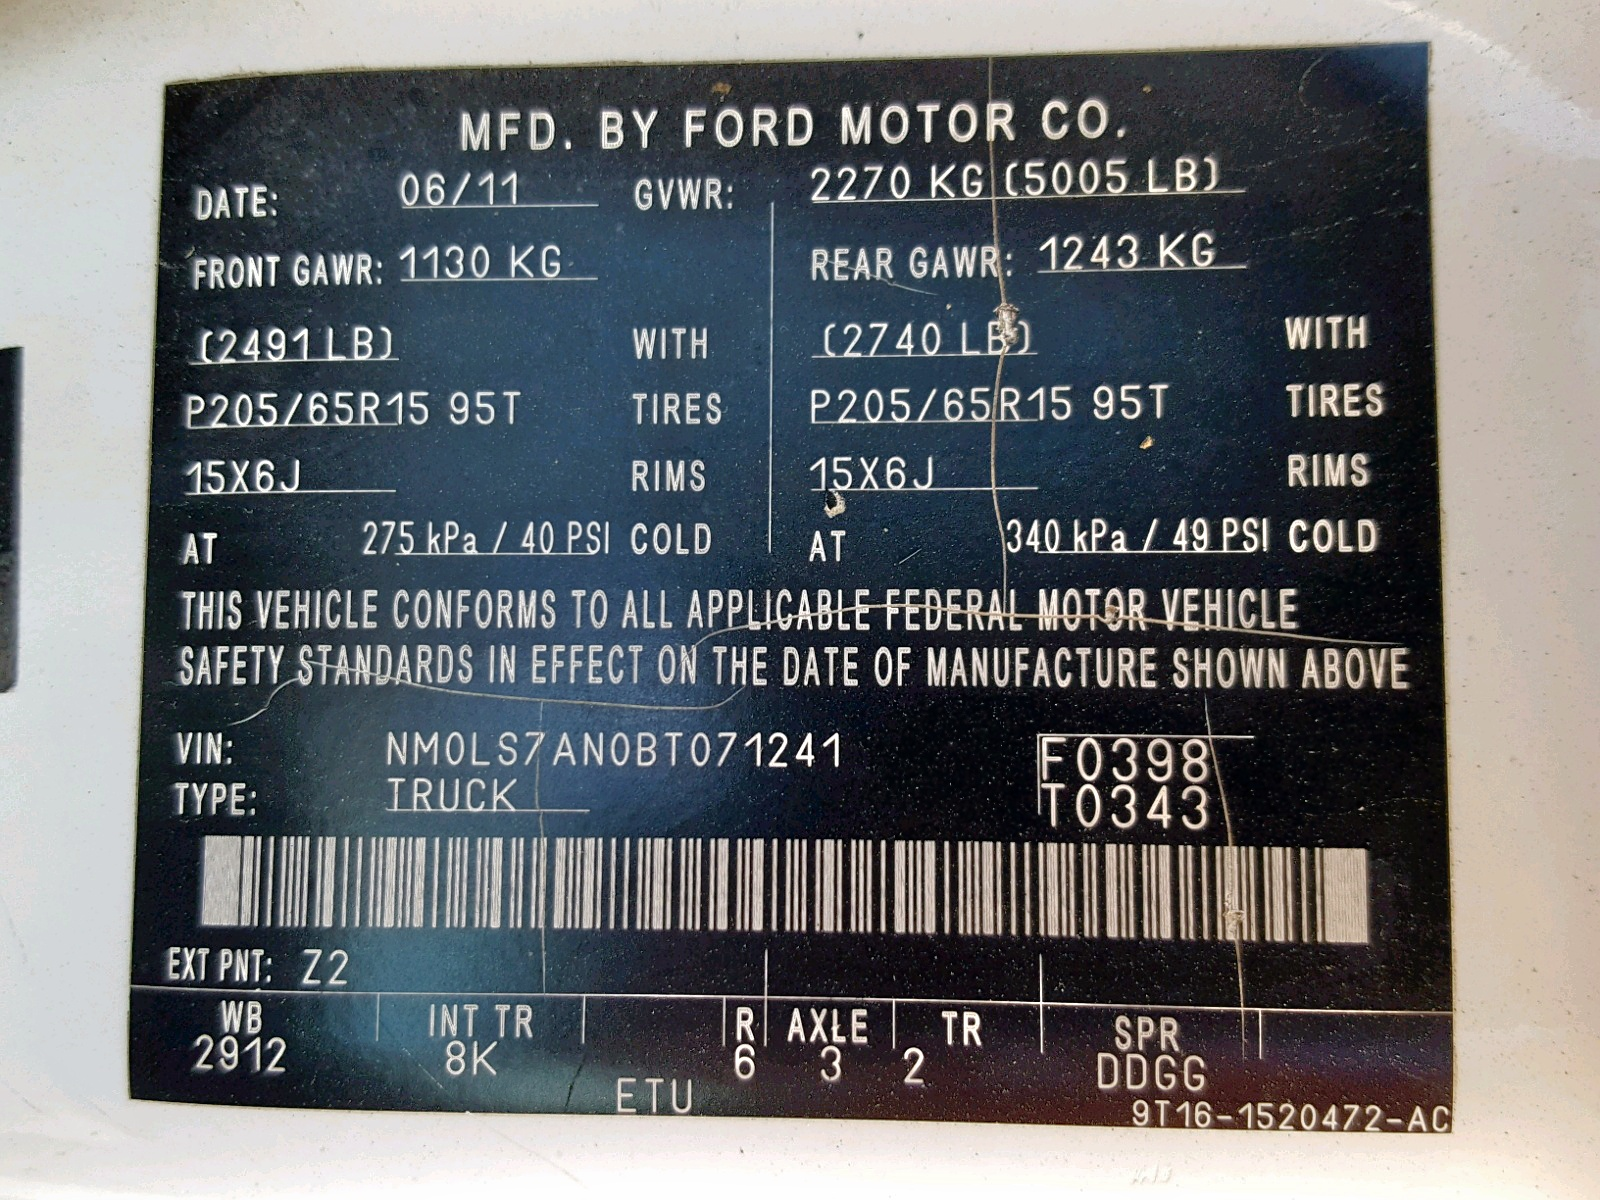 NM0LS7AN0BT071241 - 2011 Ford Transit Co 2.0L